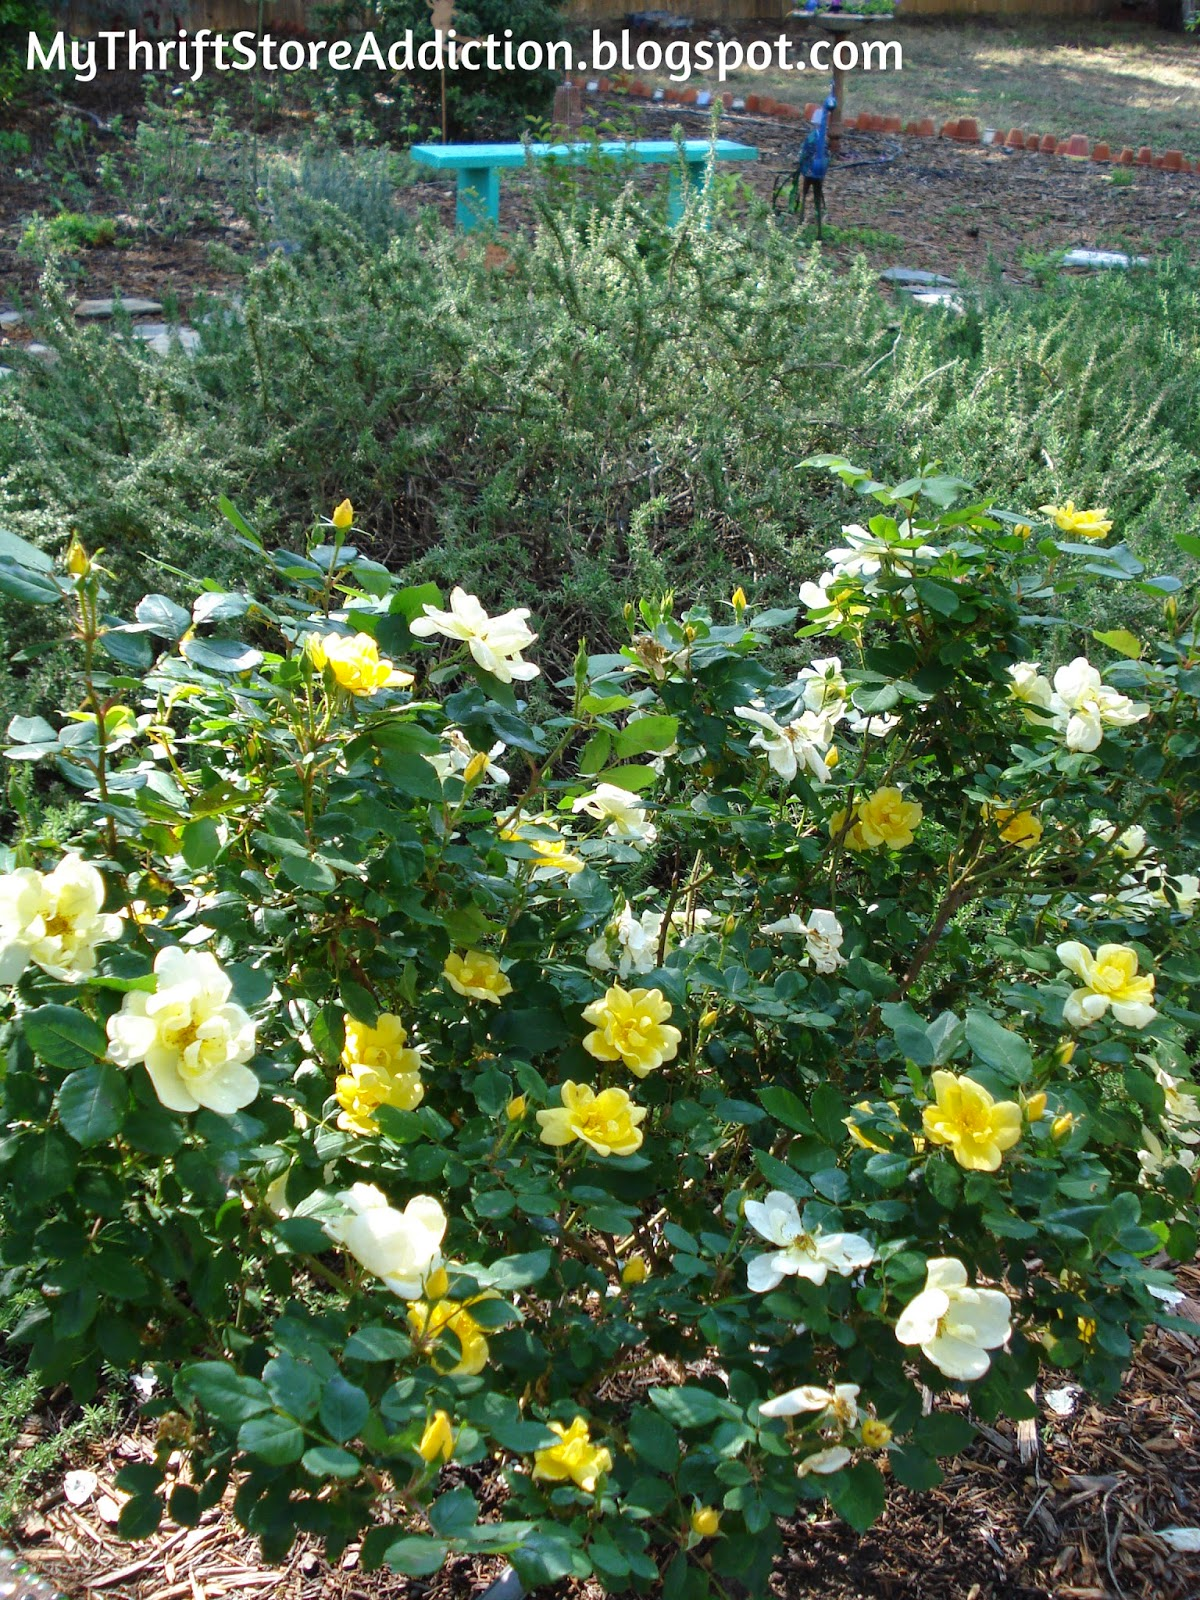 Yellow double knock out roses